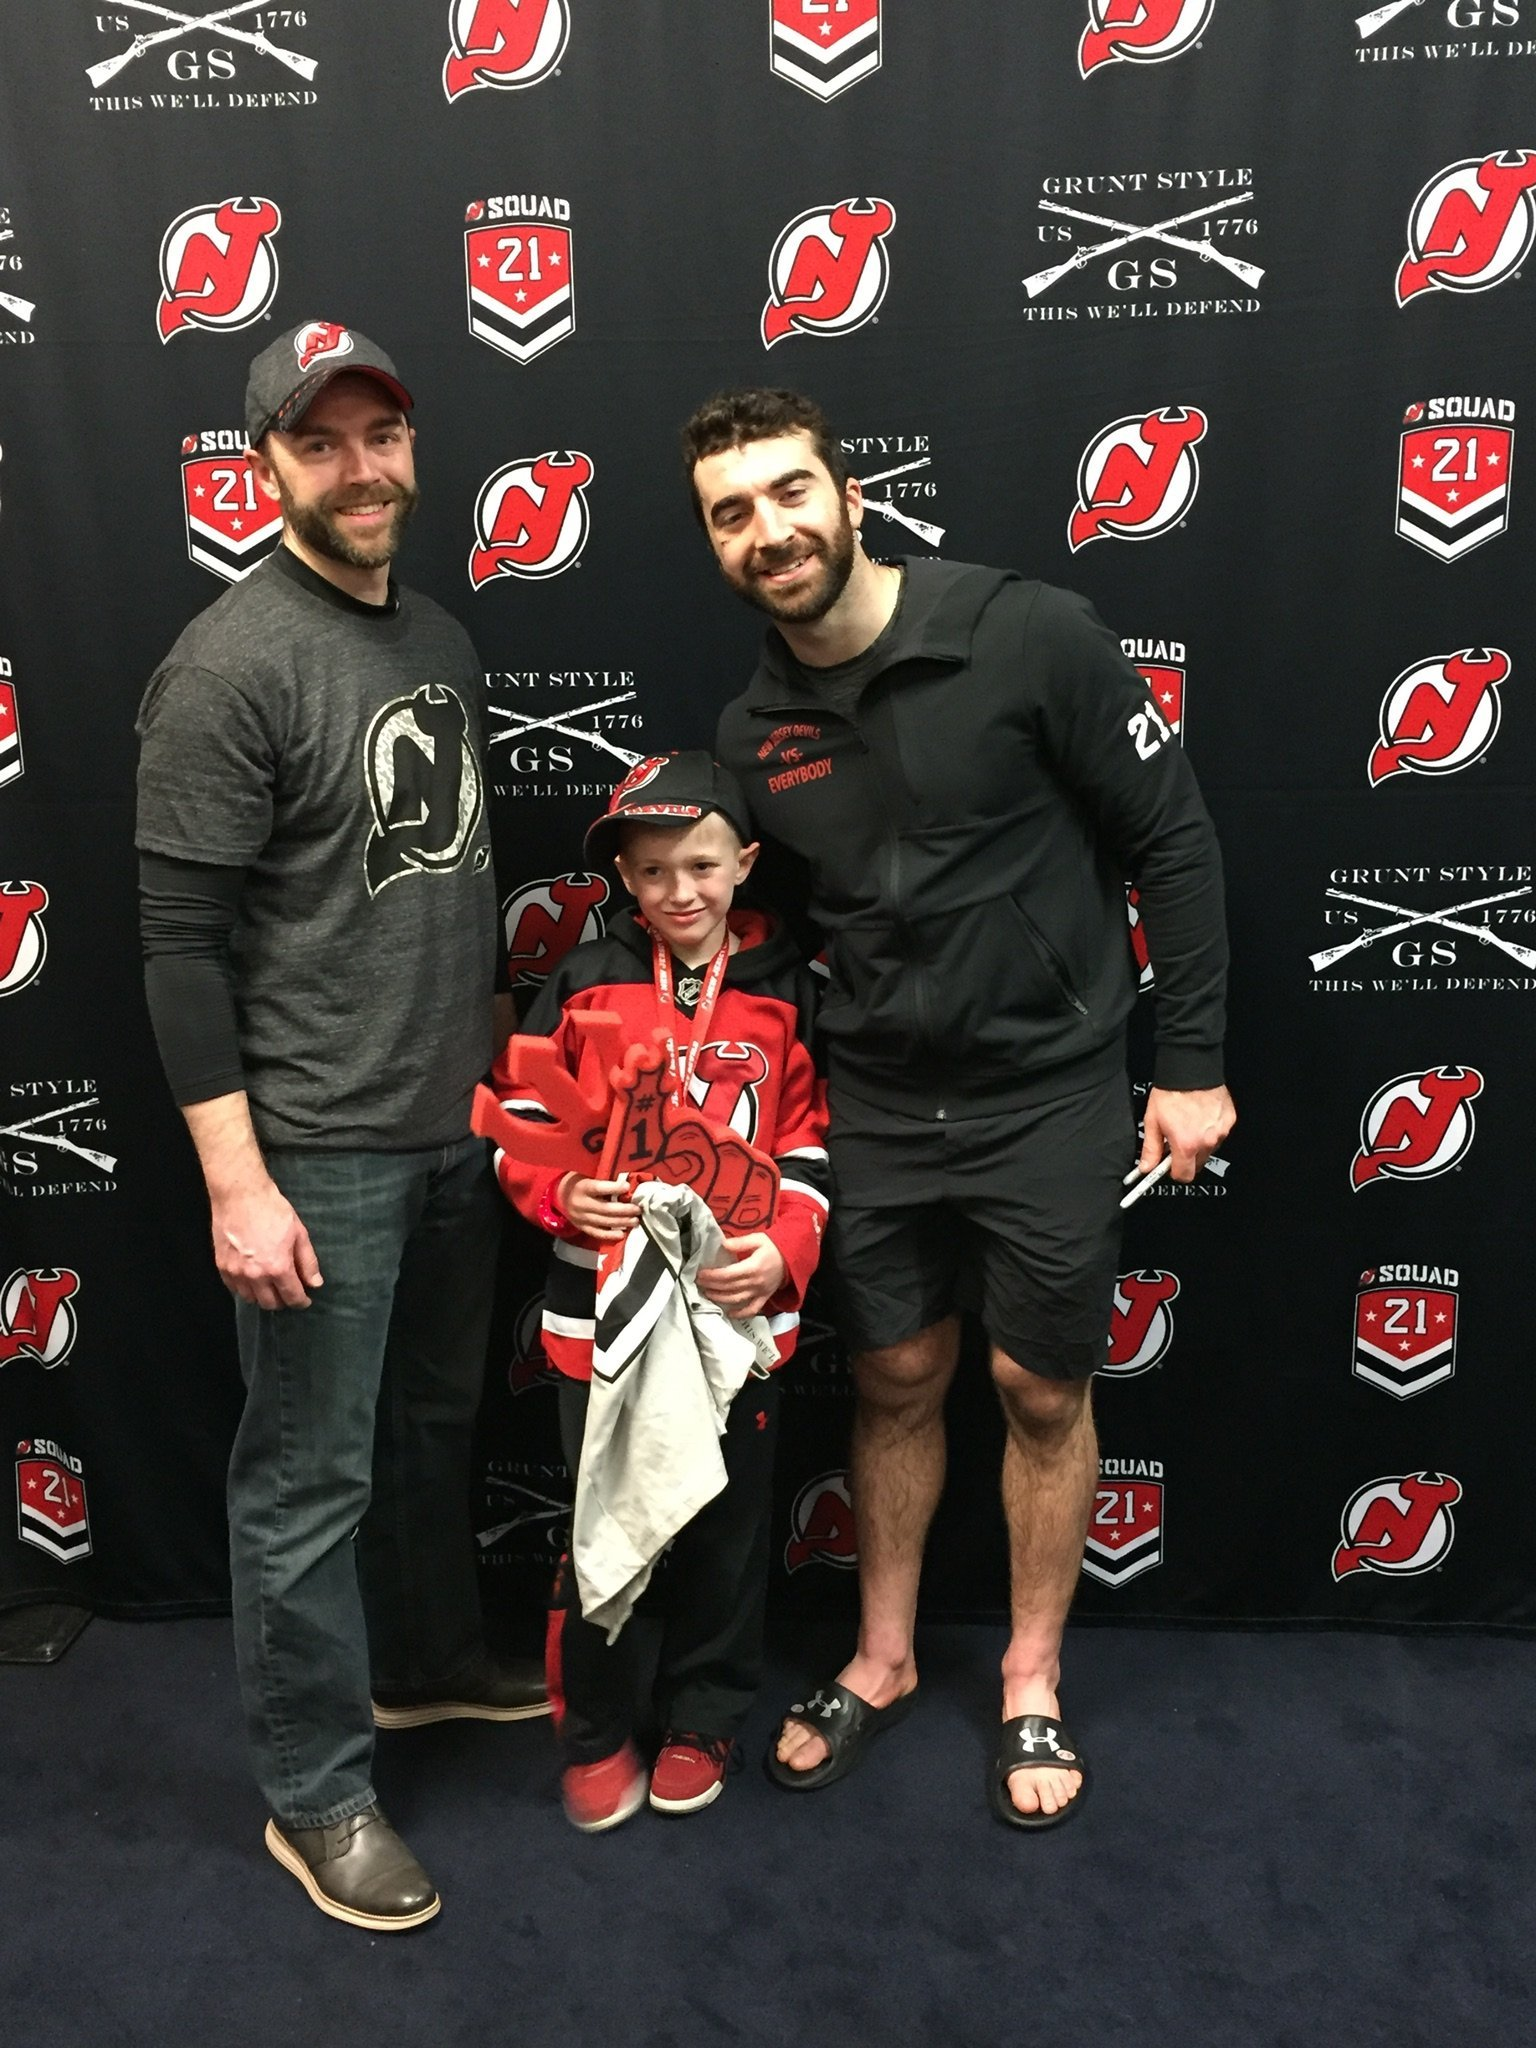 Thank you messages to veteran tickets foundation donors jason attended new jersey devils vs toronto maple leafs nhl 21 squad tickets m4hsunfo